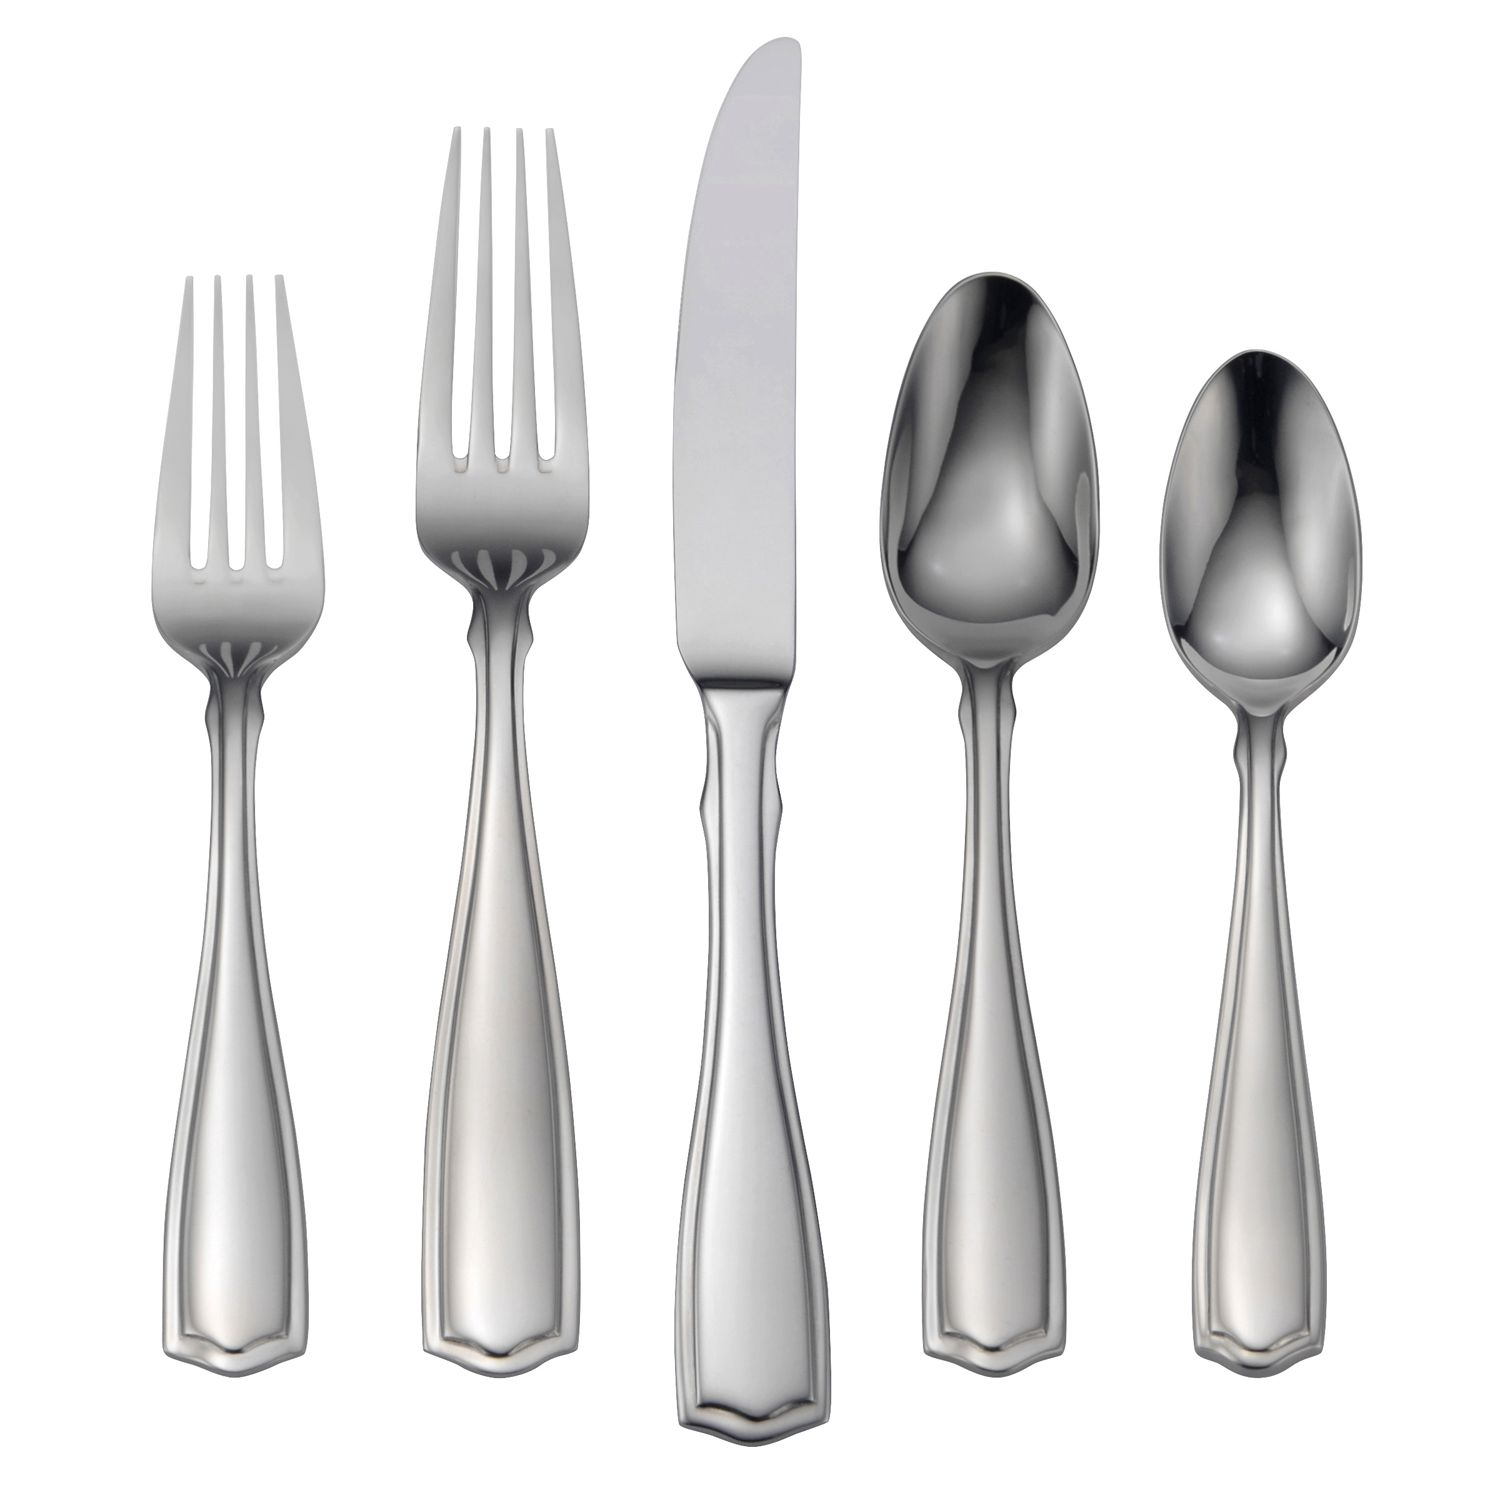 Discount Stainless Flatware Oneida Carolina 18 10 Stainless Steel 65 Pc Flatware Set